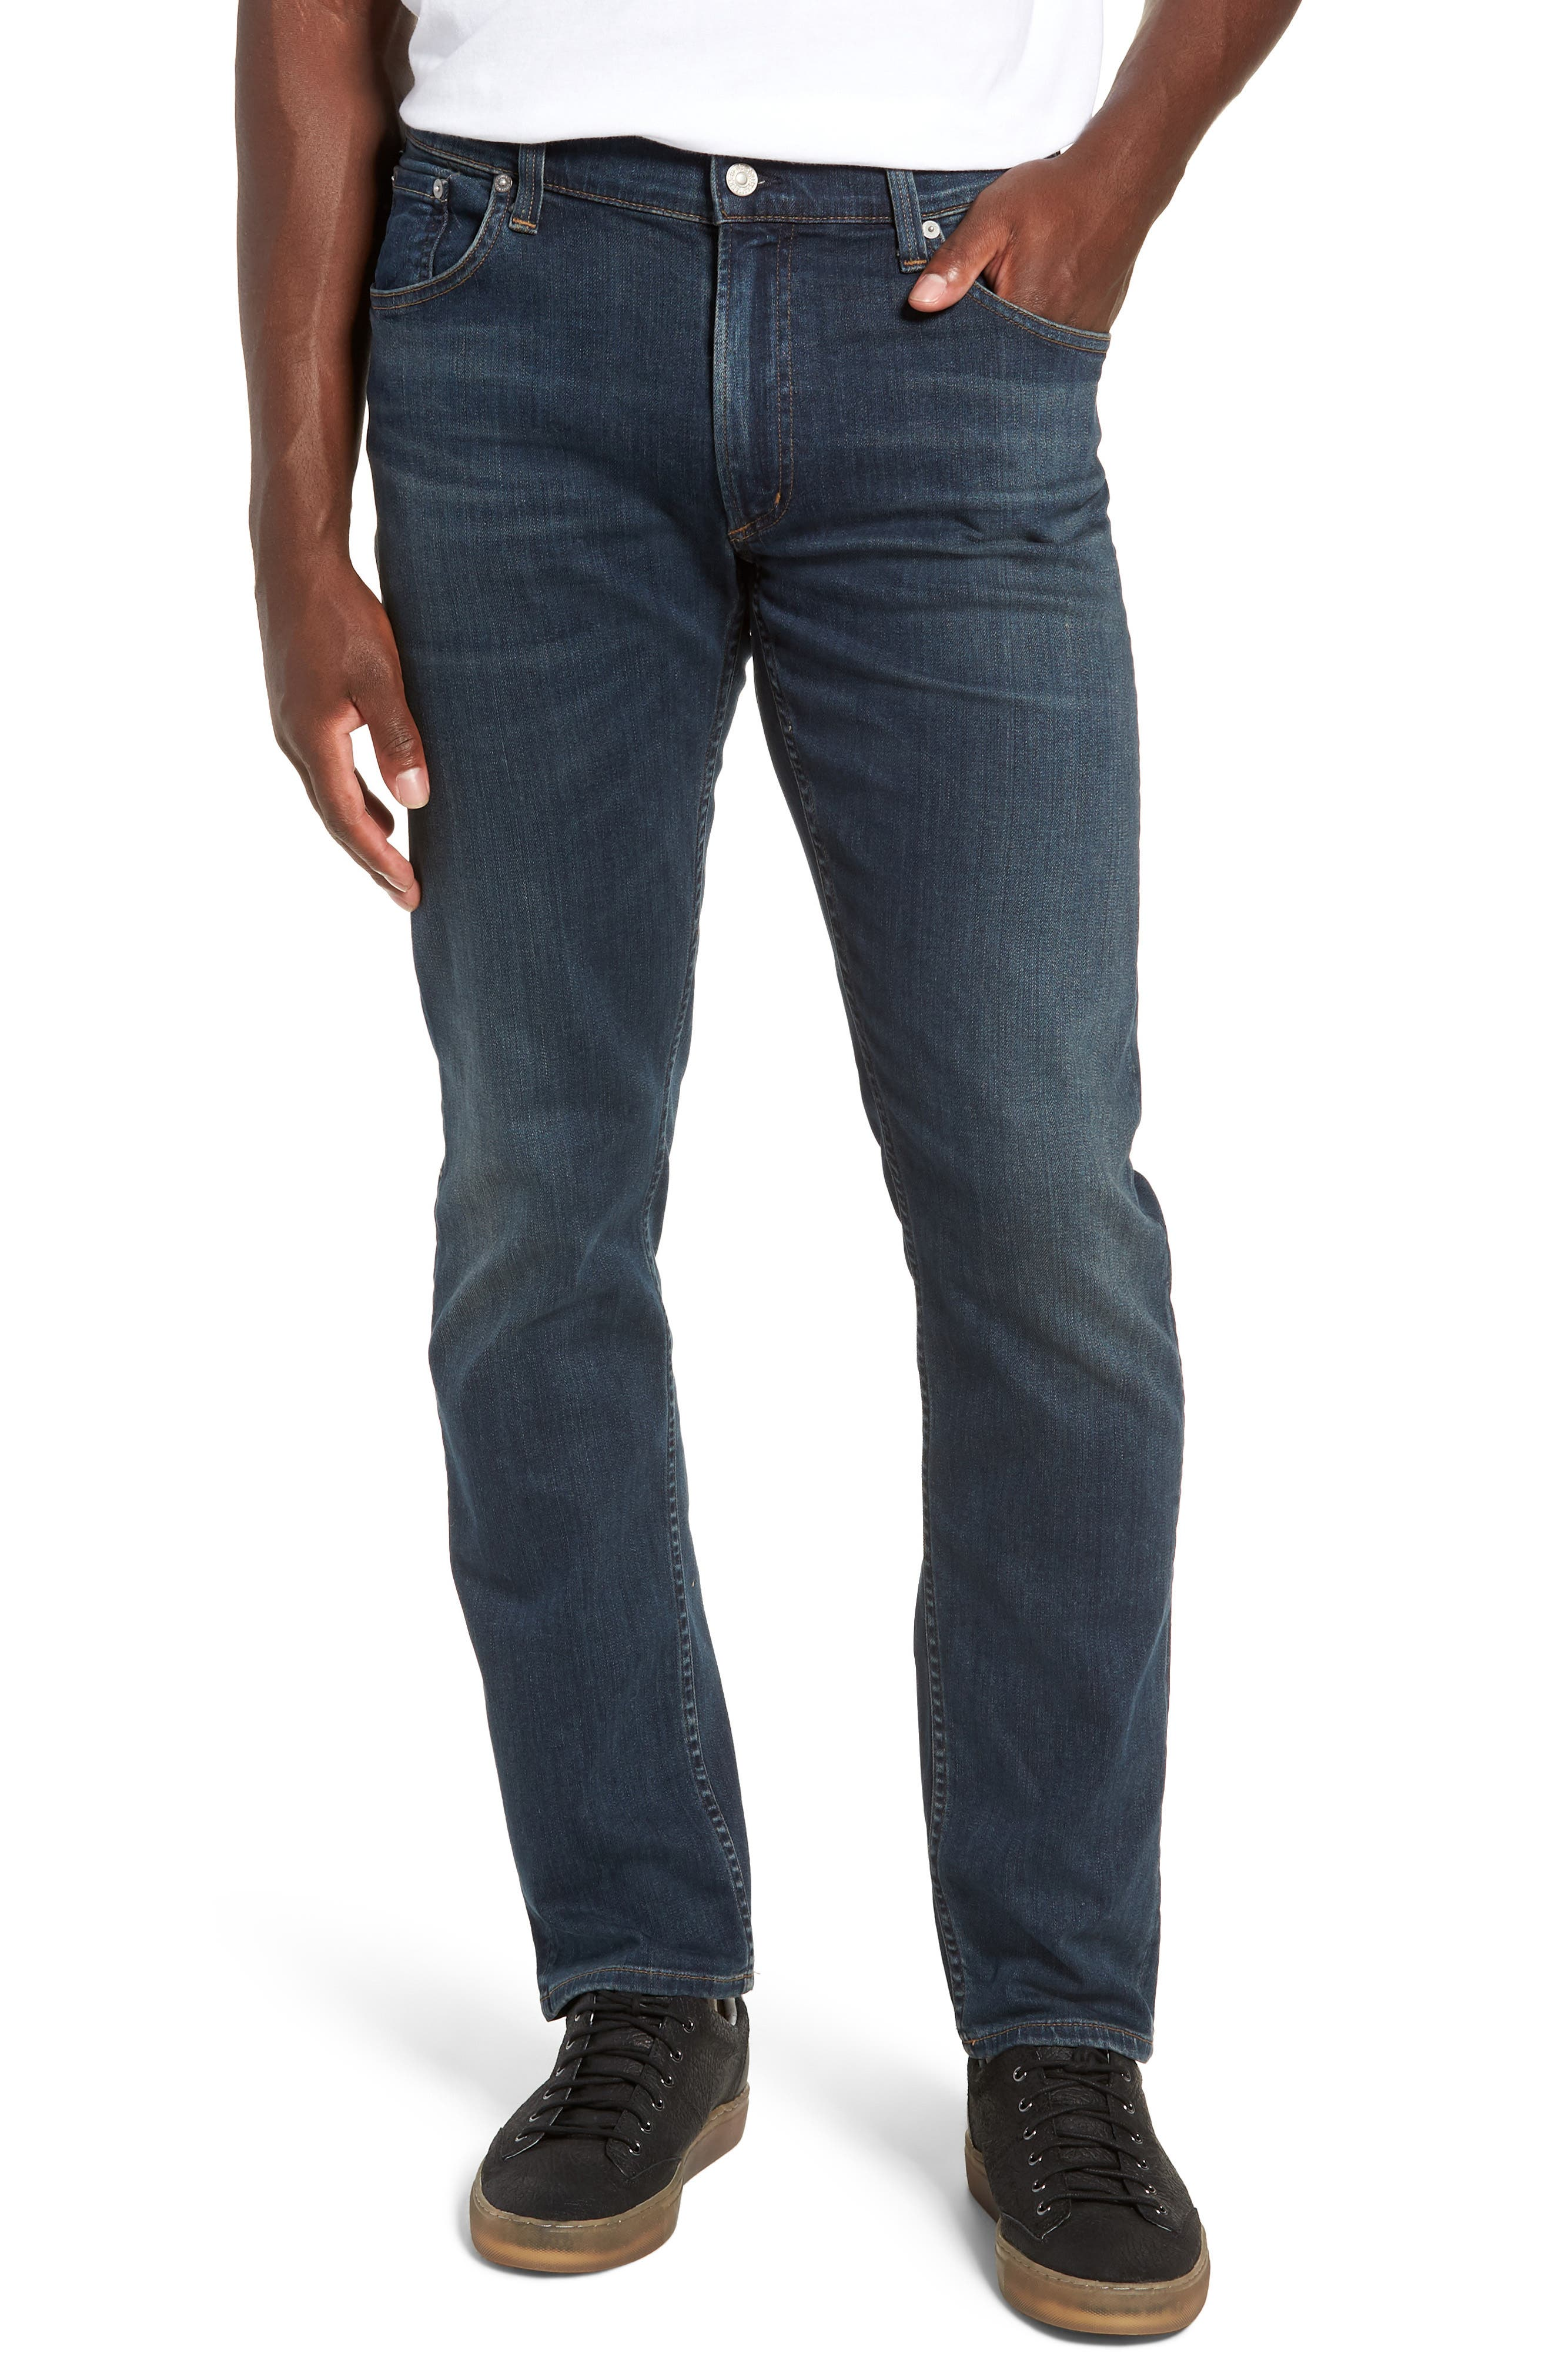 PERFORM - Bowery Slim Fit Jeans,                         Main,                         color, 424